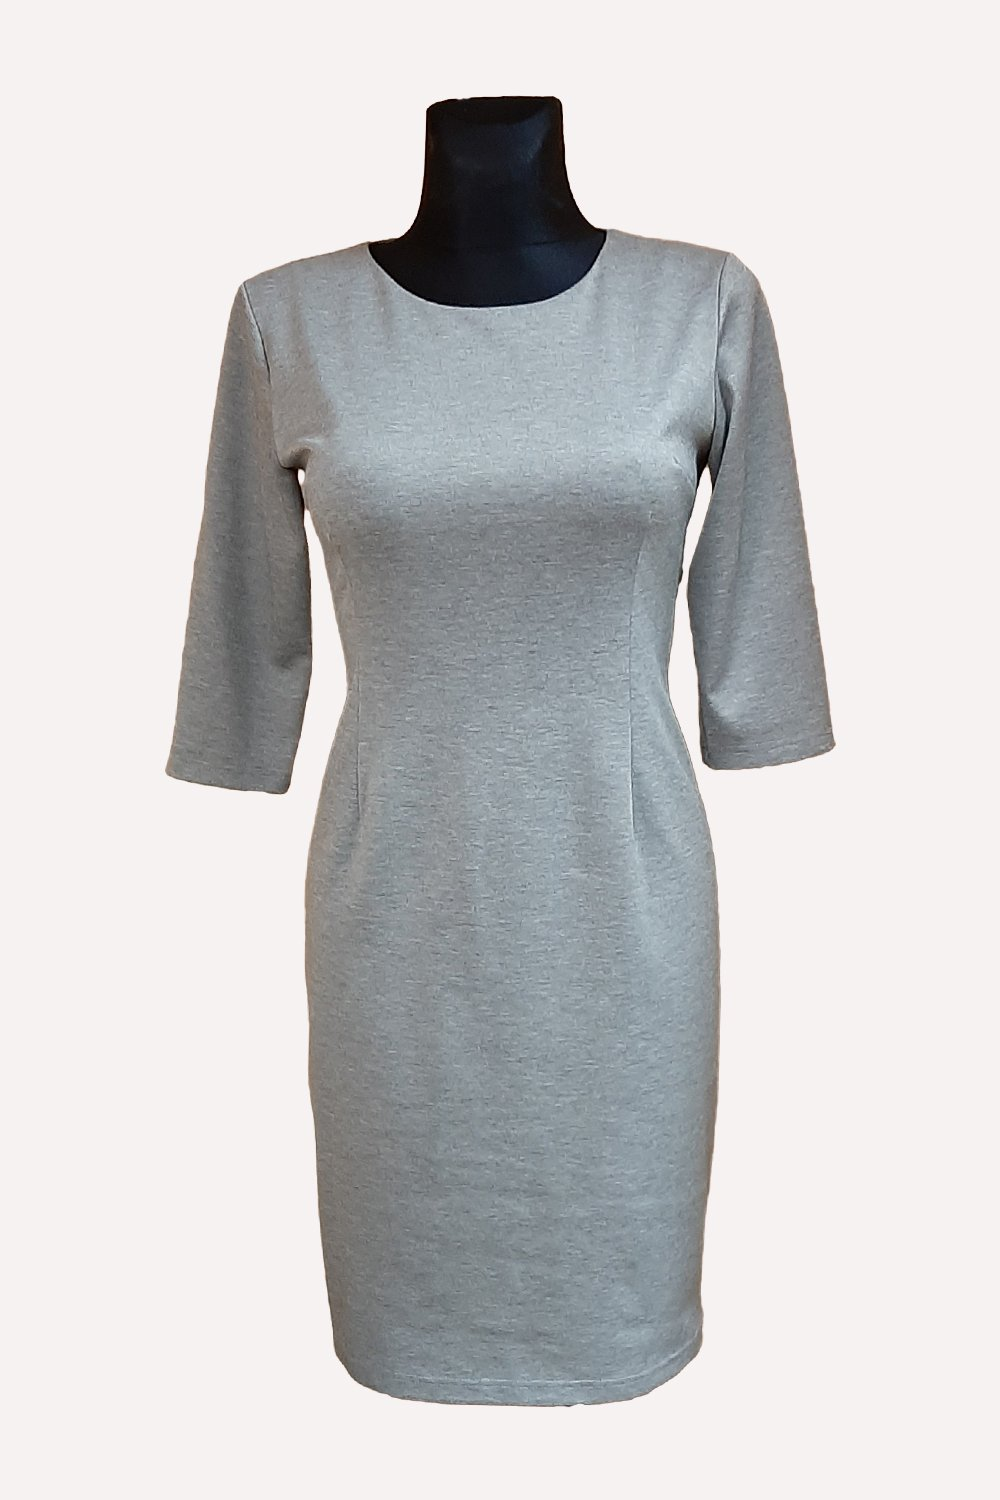 Classic grey melange knitted dress